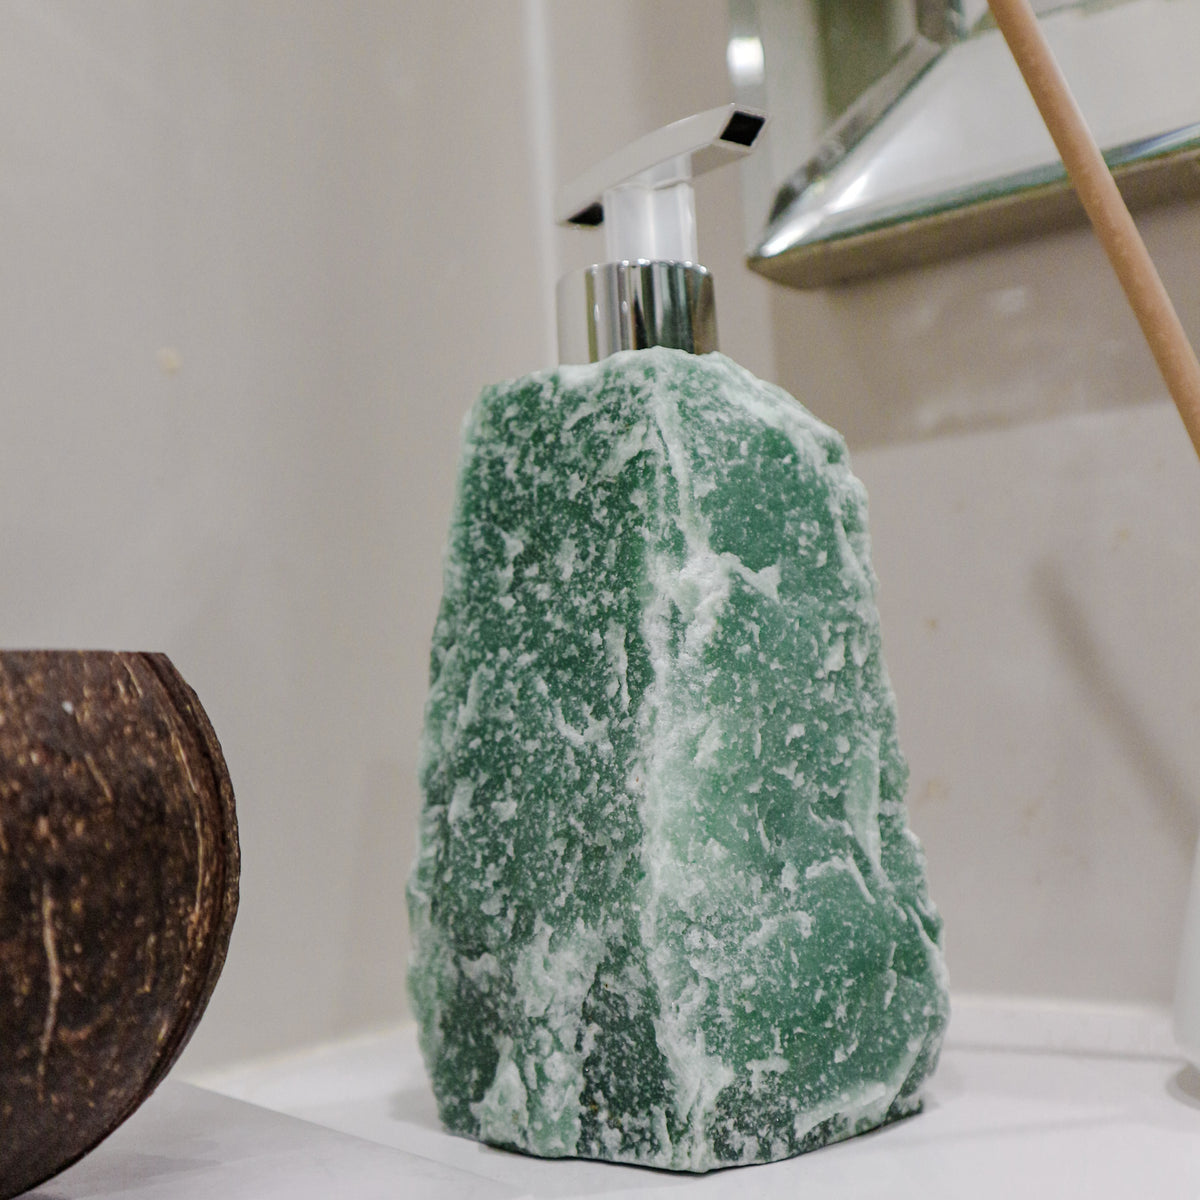 Green Quartz Soap Dispenser